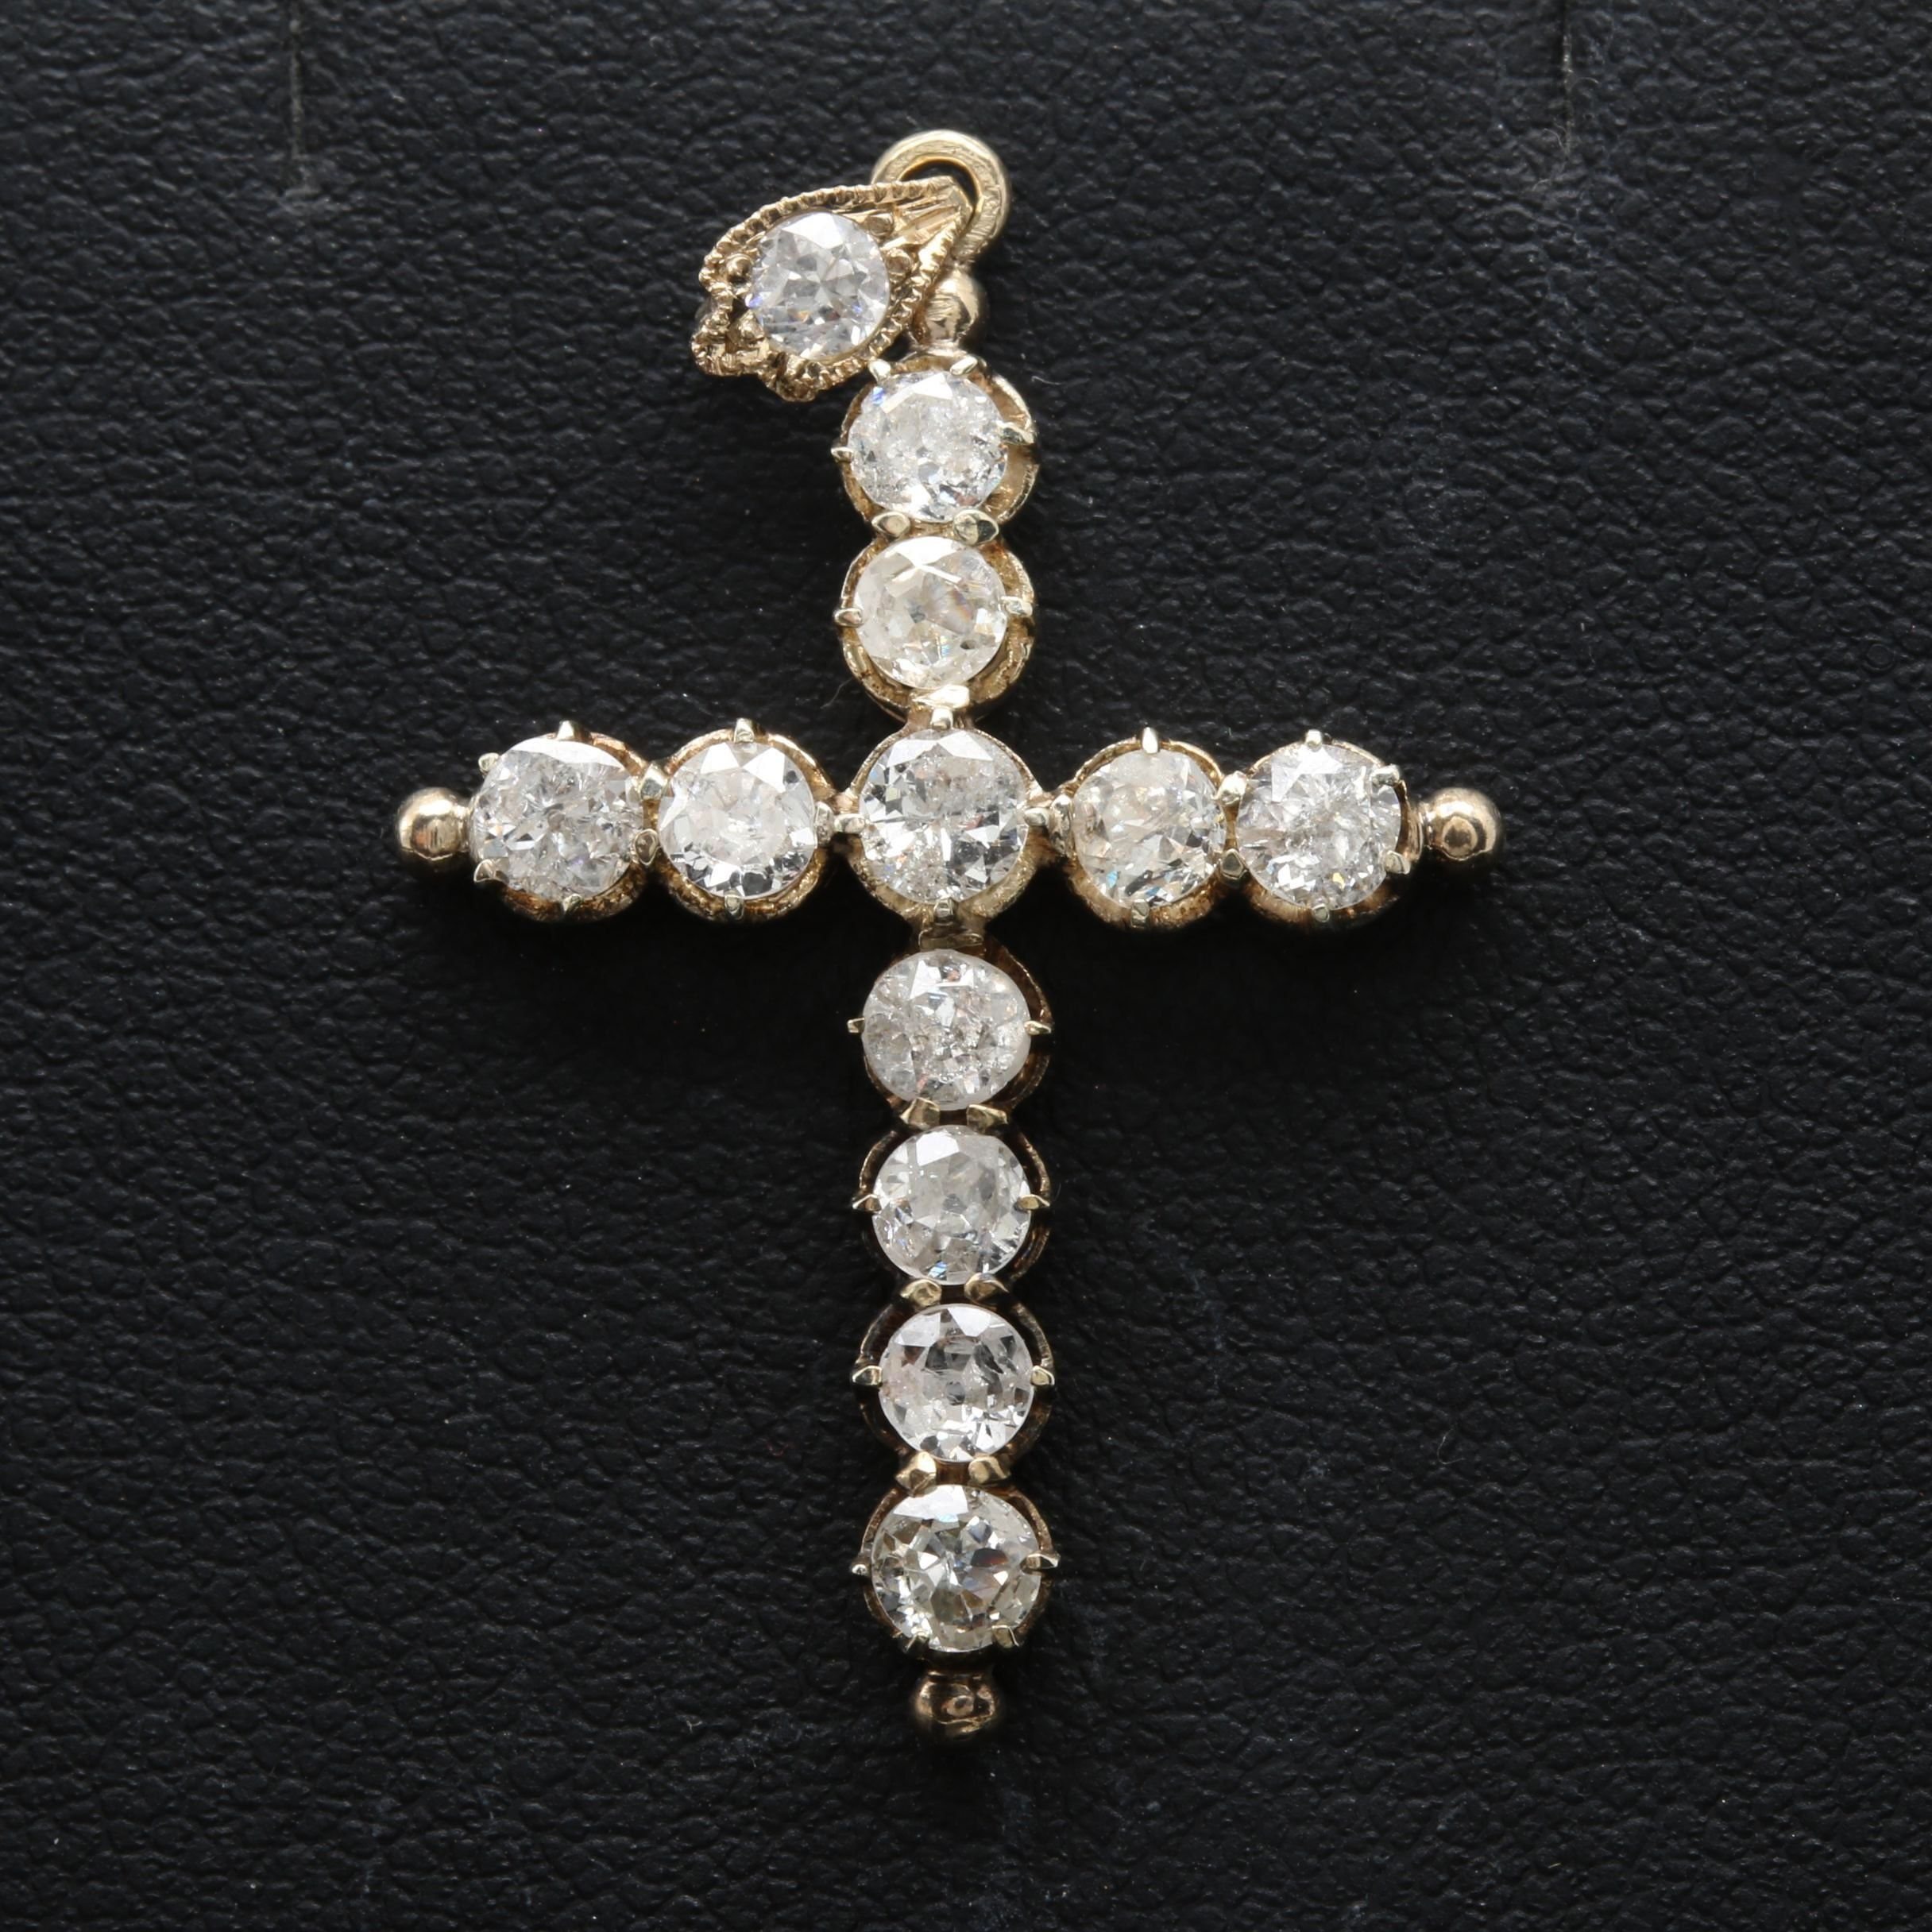 Antique 10K Yellow Gold 1.32 CTW Diamond Cross Pendant